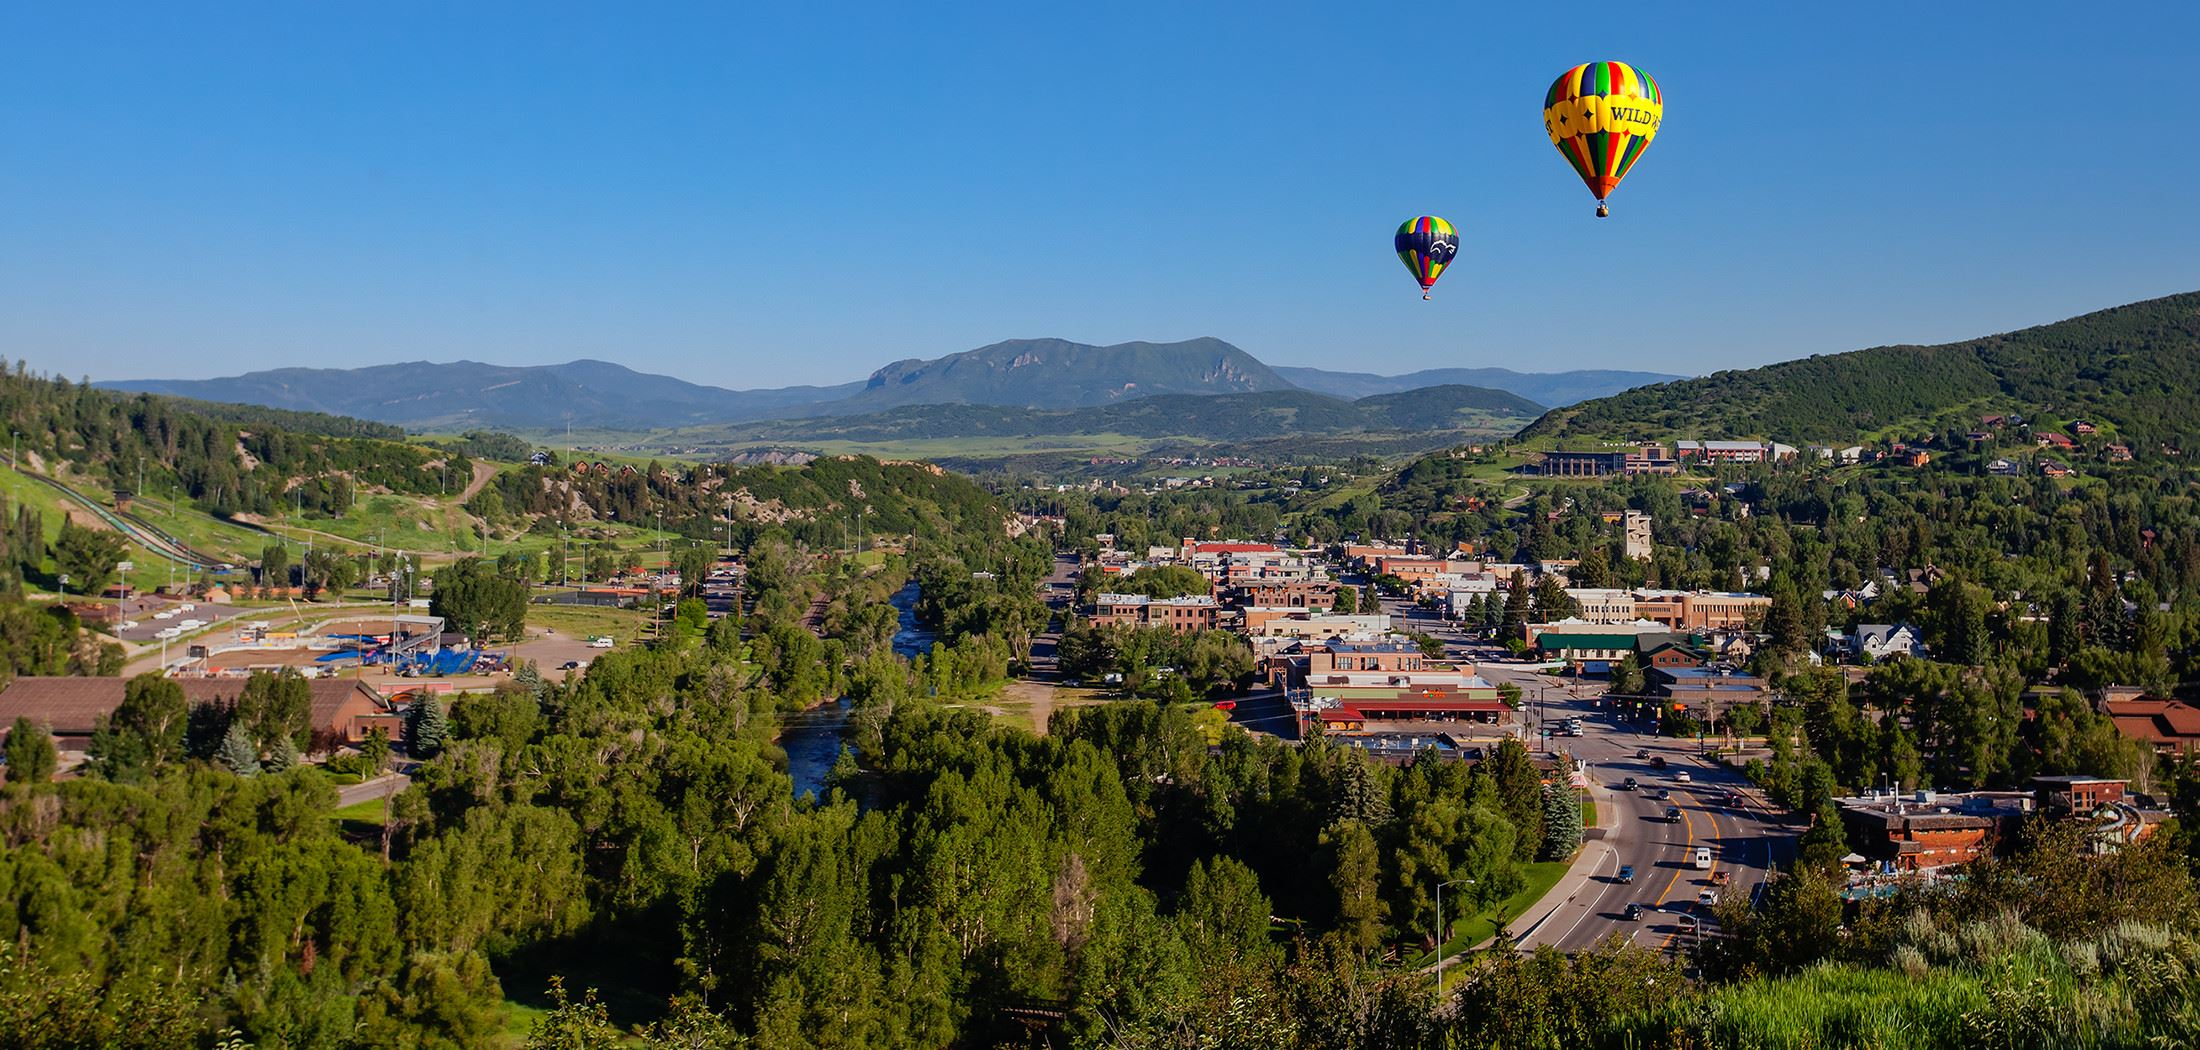 Hot Air Balloons float over downtown Steamboat Springs